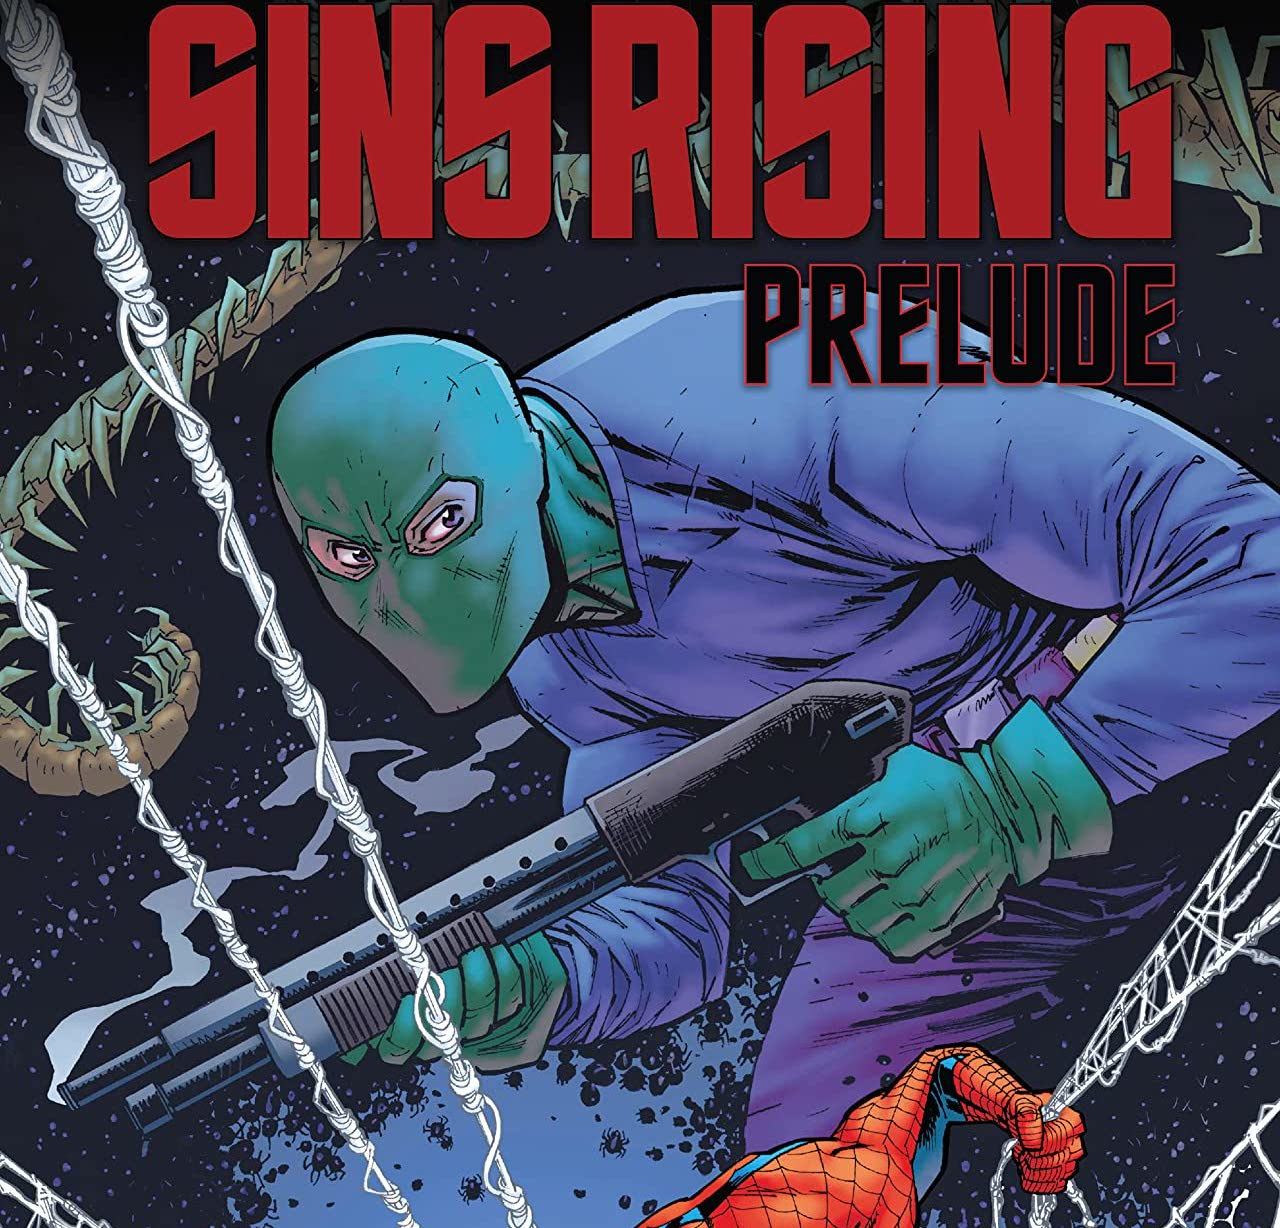 Sins Rising is the prelude to the big Sin Eater vs. Spidey story arc.